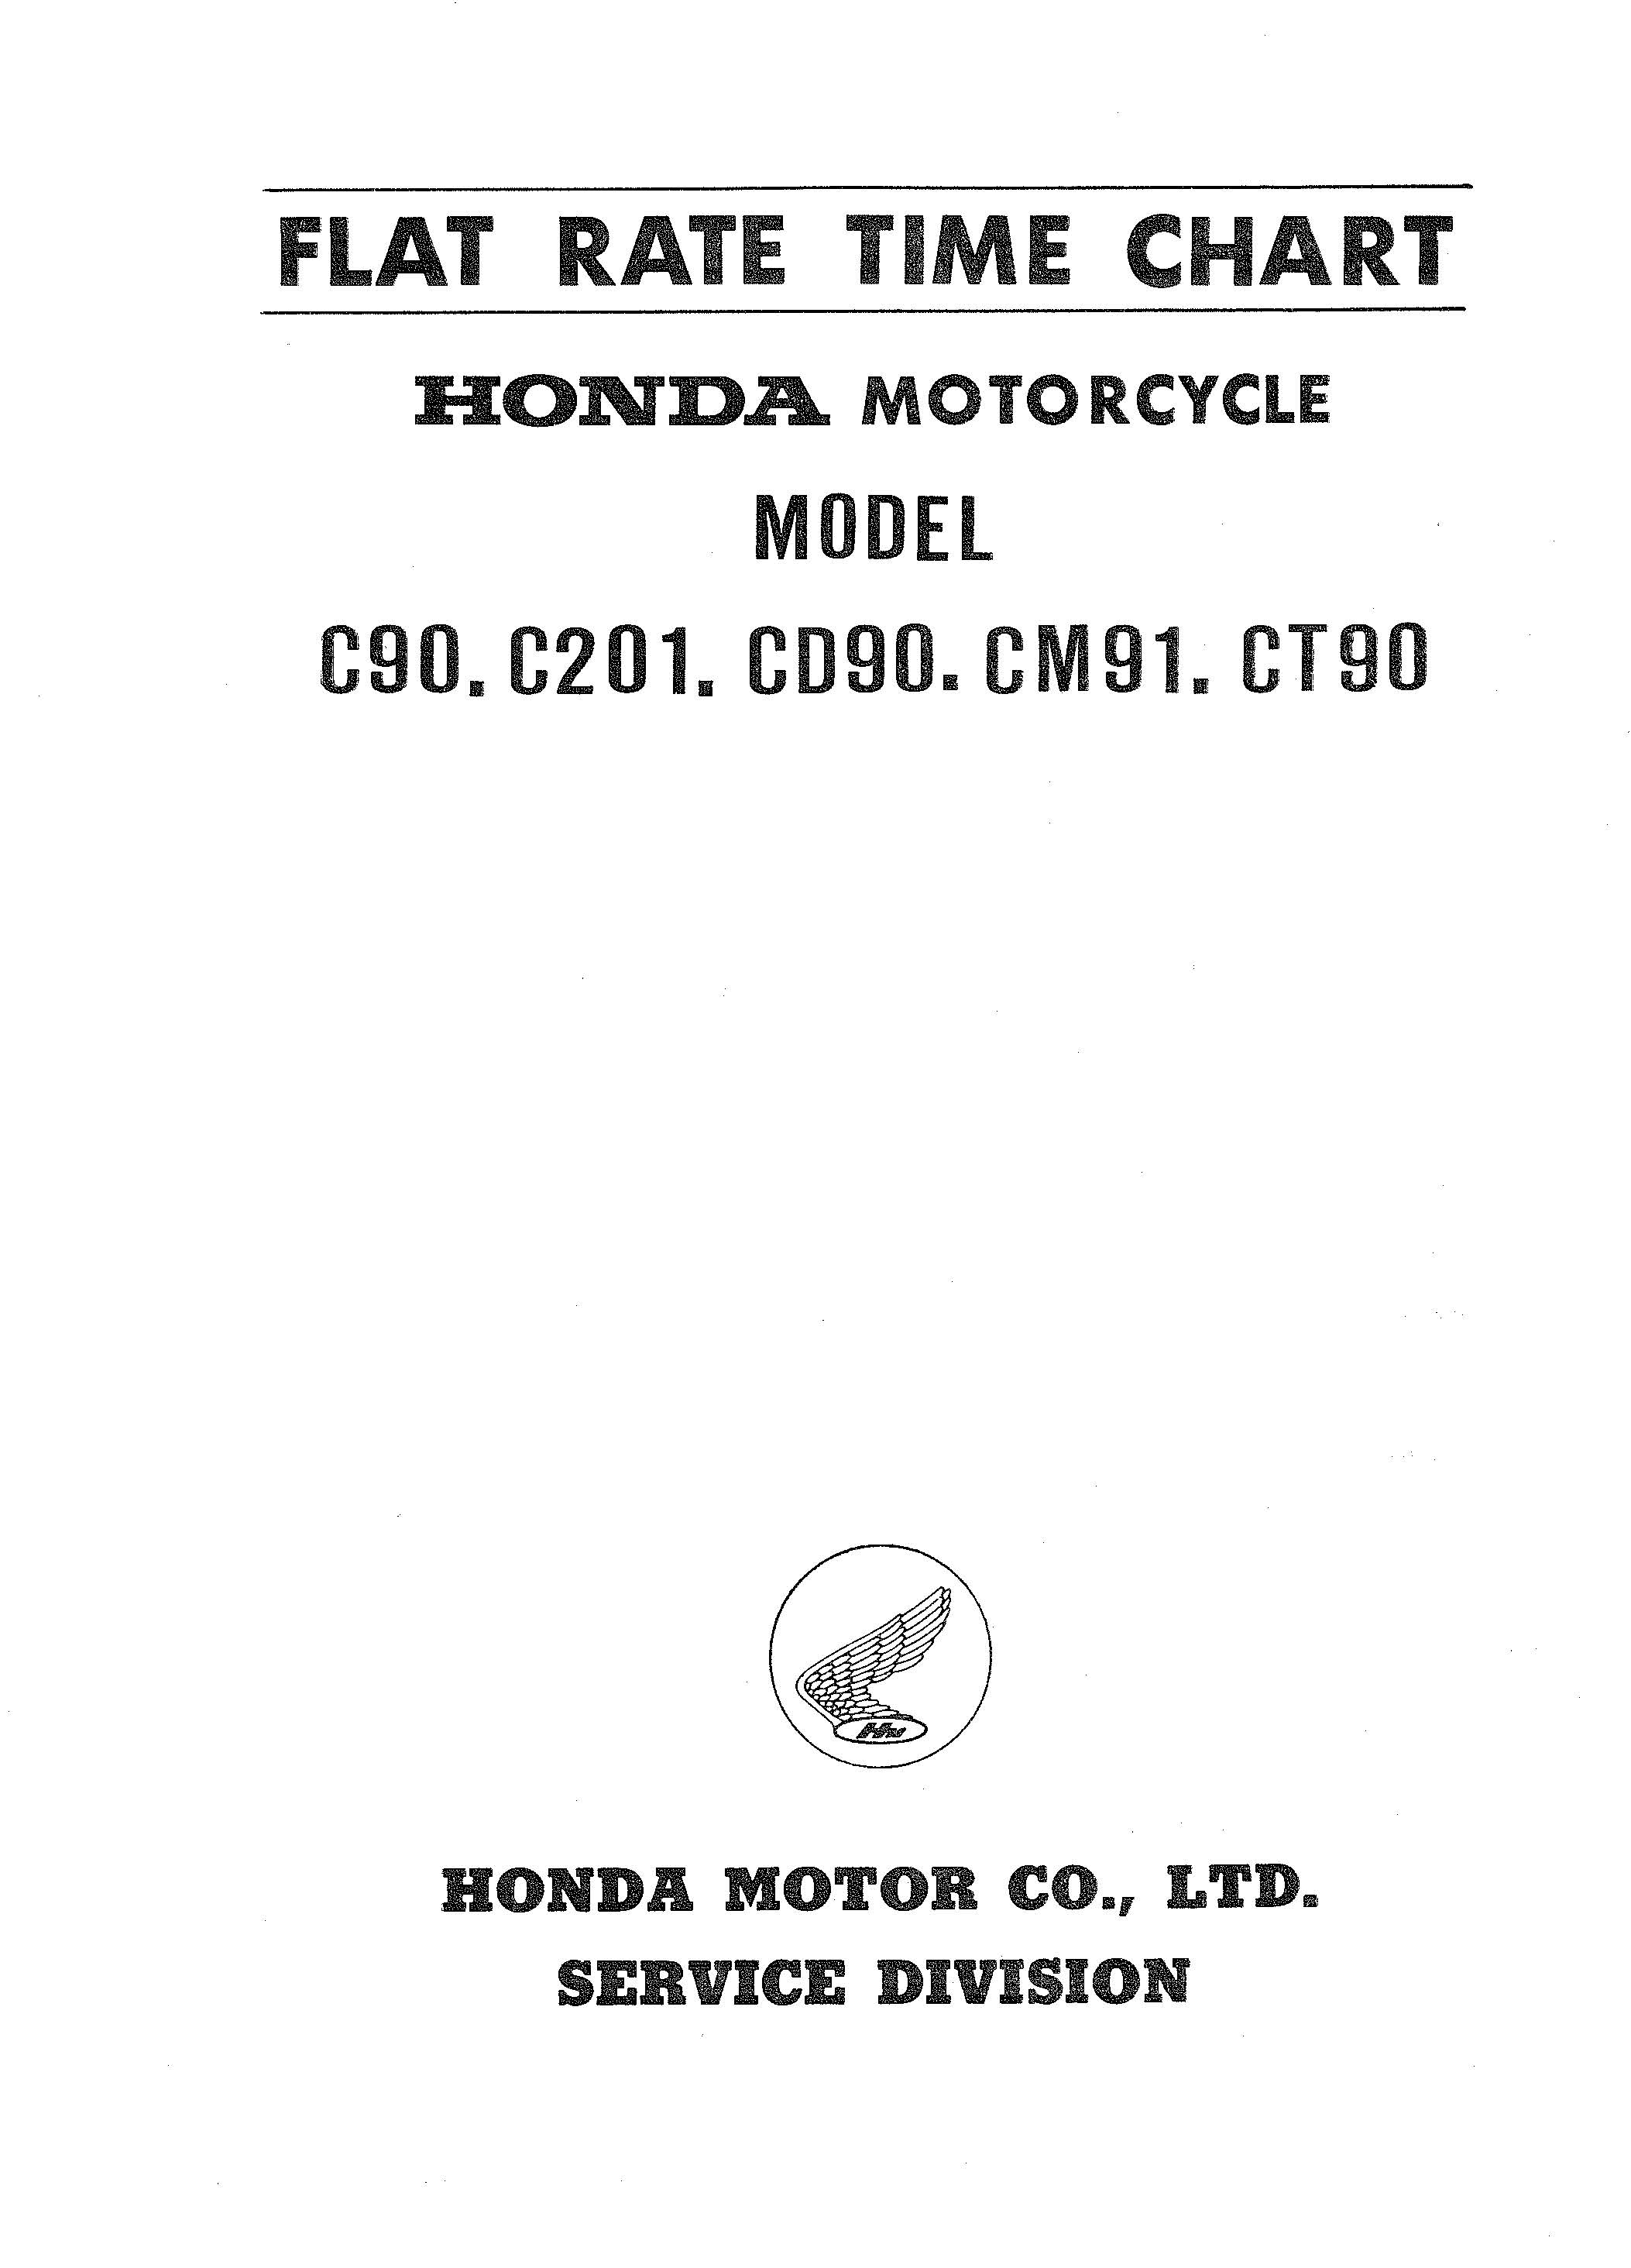 Parts list for Honda CT90 (1967)